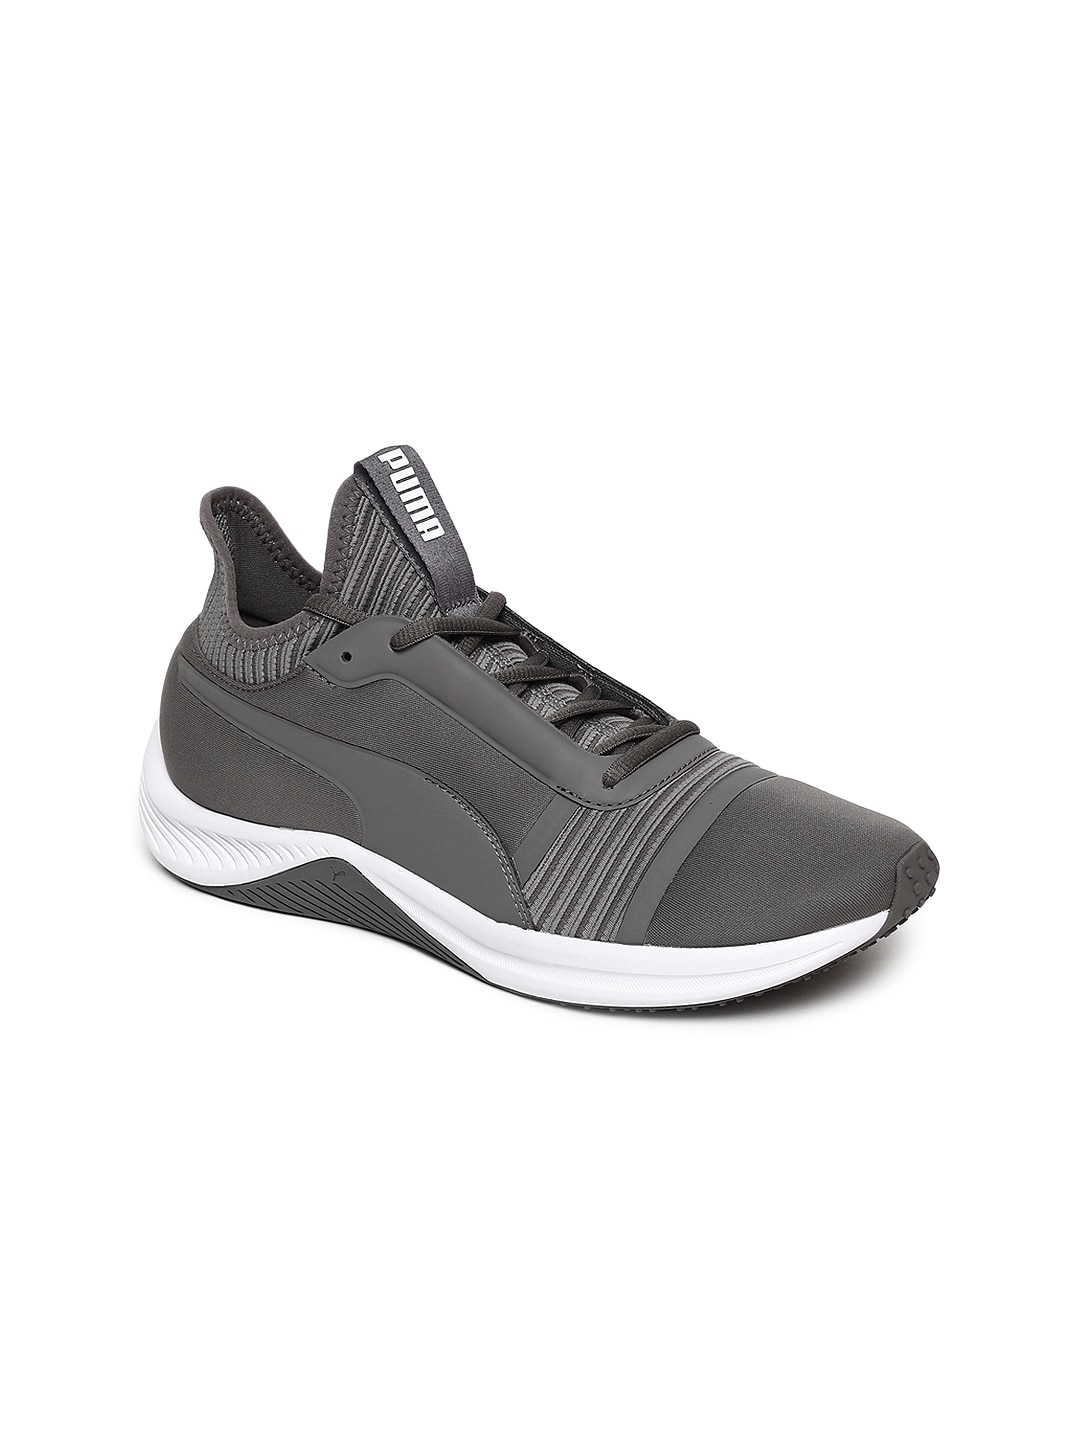 05a311197df339 Puma Shoes - Buy Puma Shoes for Men   Women Online in India